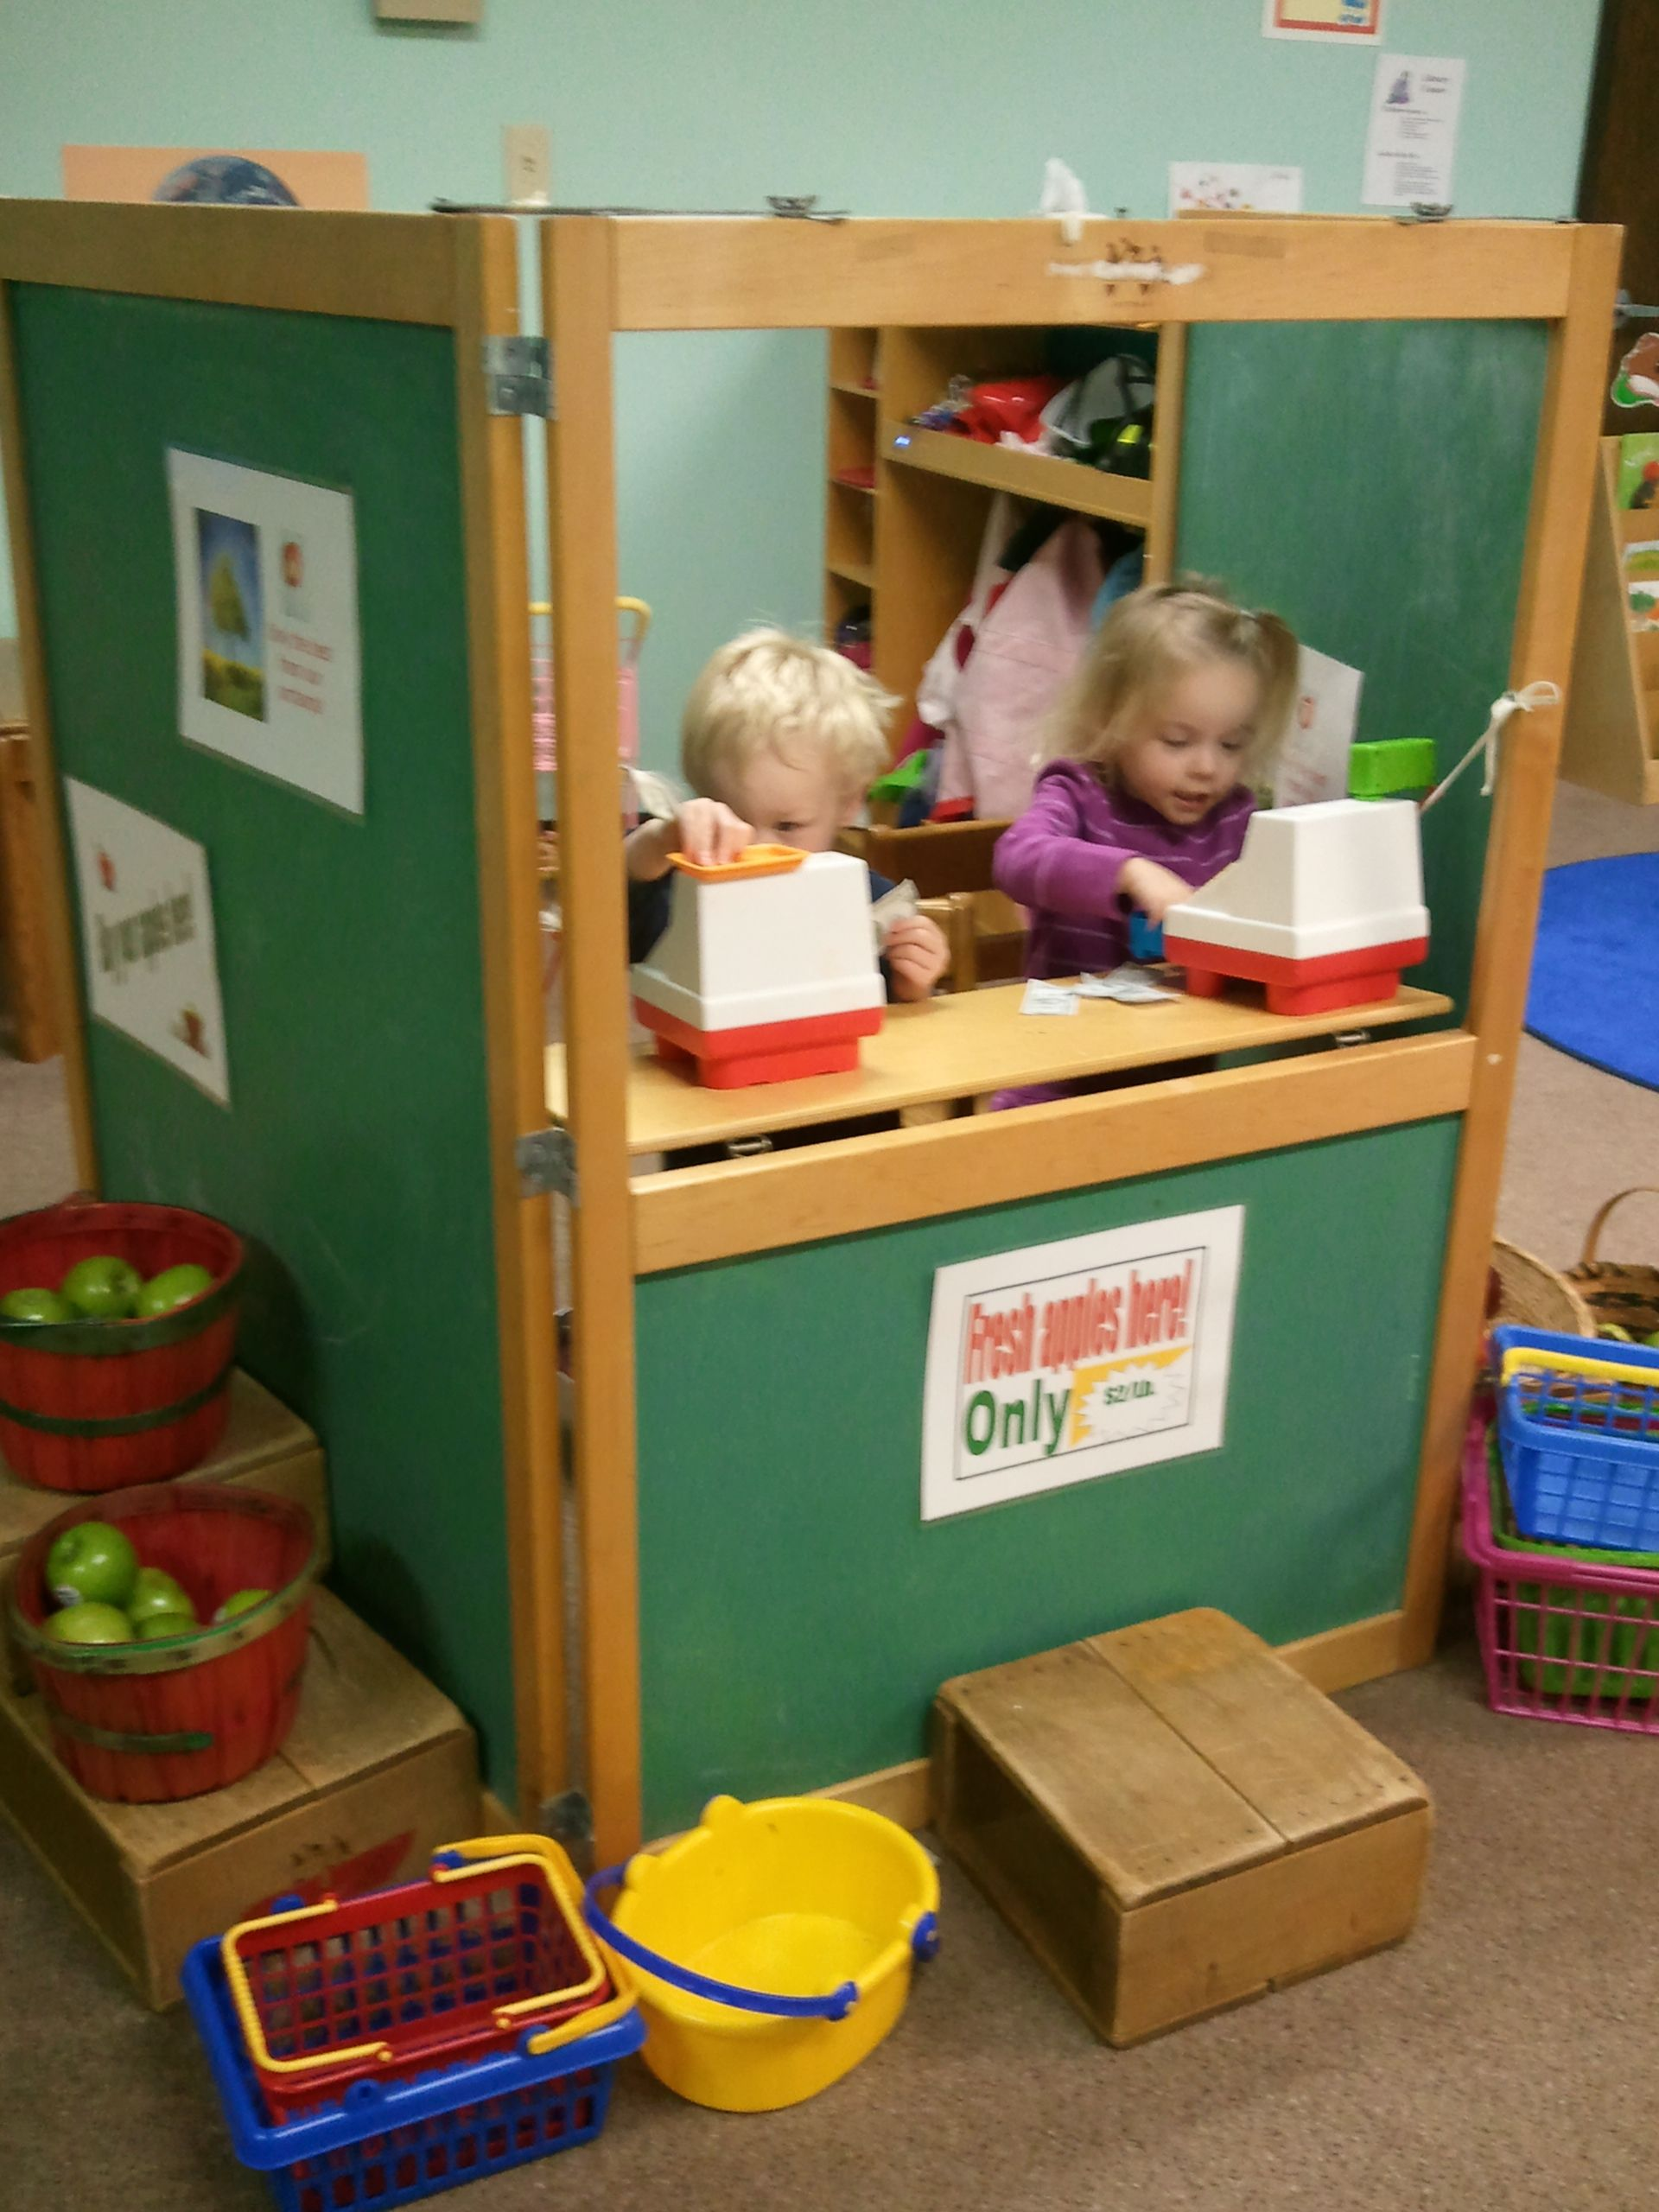 Set Up An Apple Store With Cash Registers Play Money Apples And Baskets Skills Dramatic Play